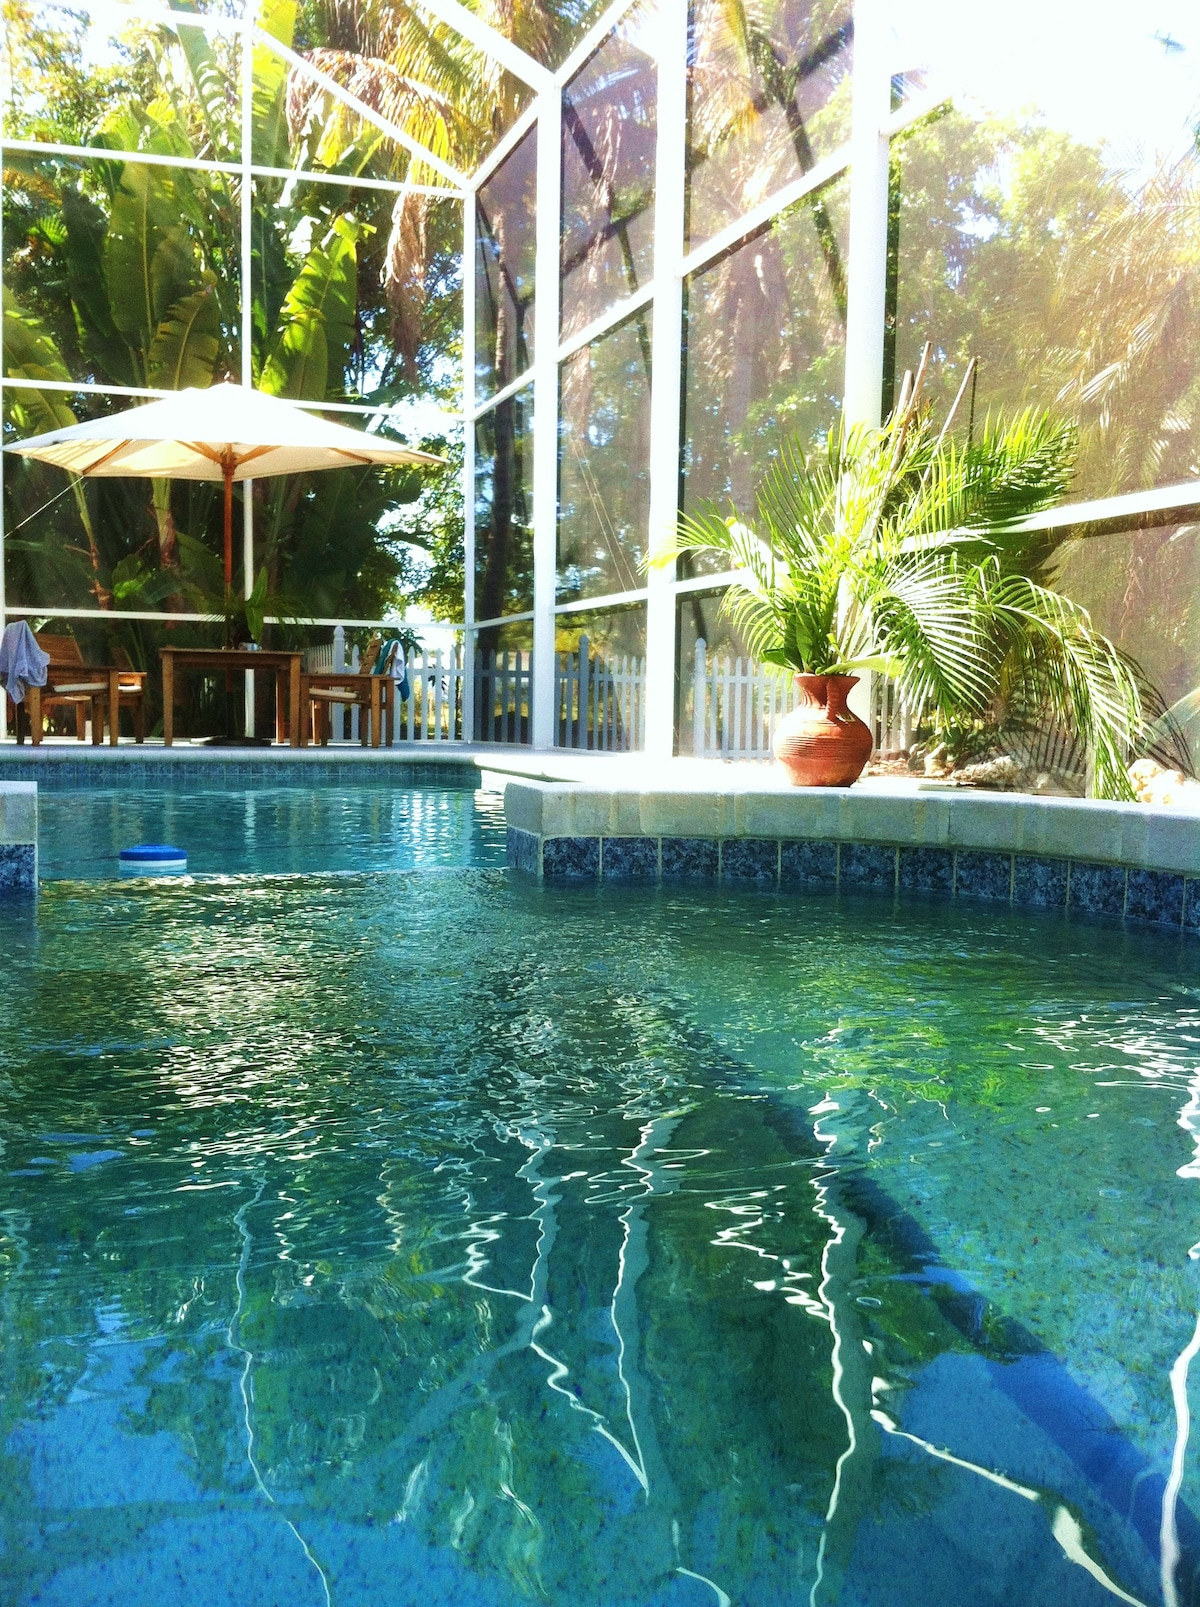 Pool & Spa combo with teak patio dining table.